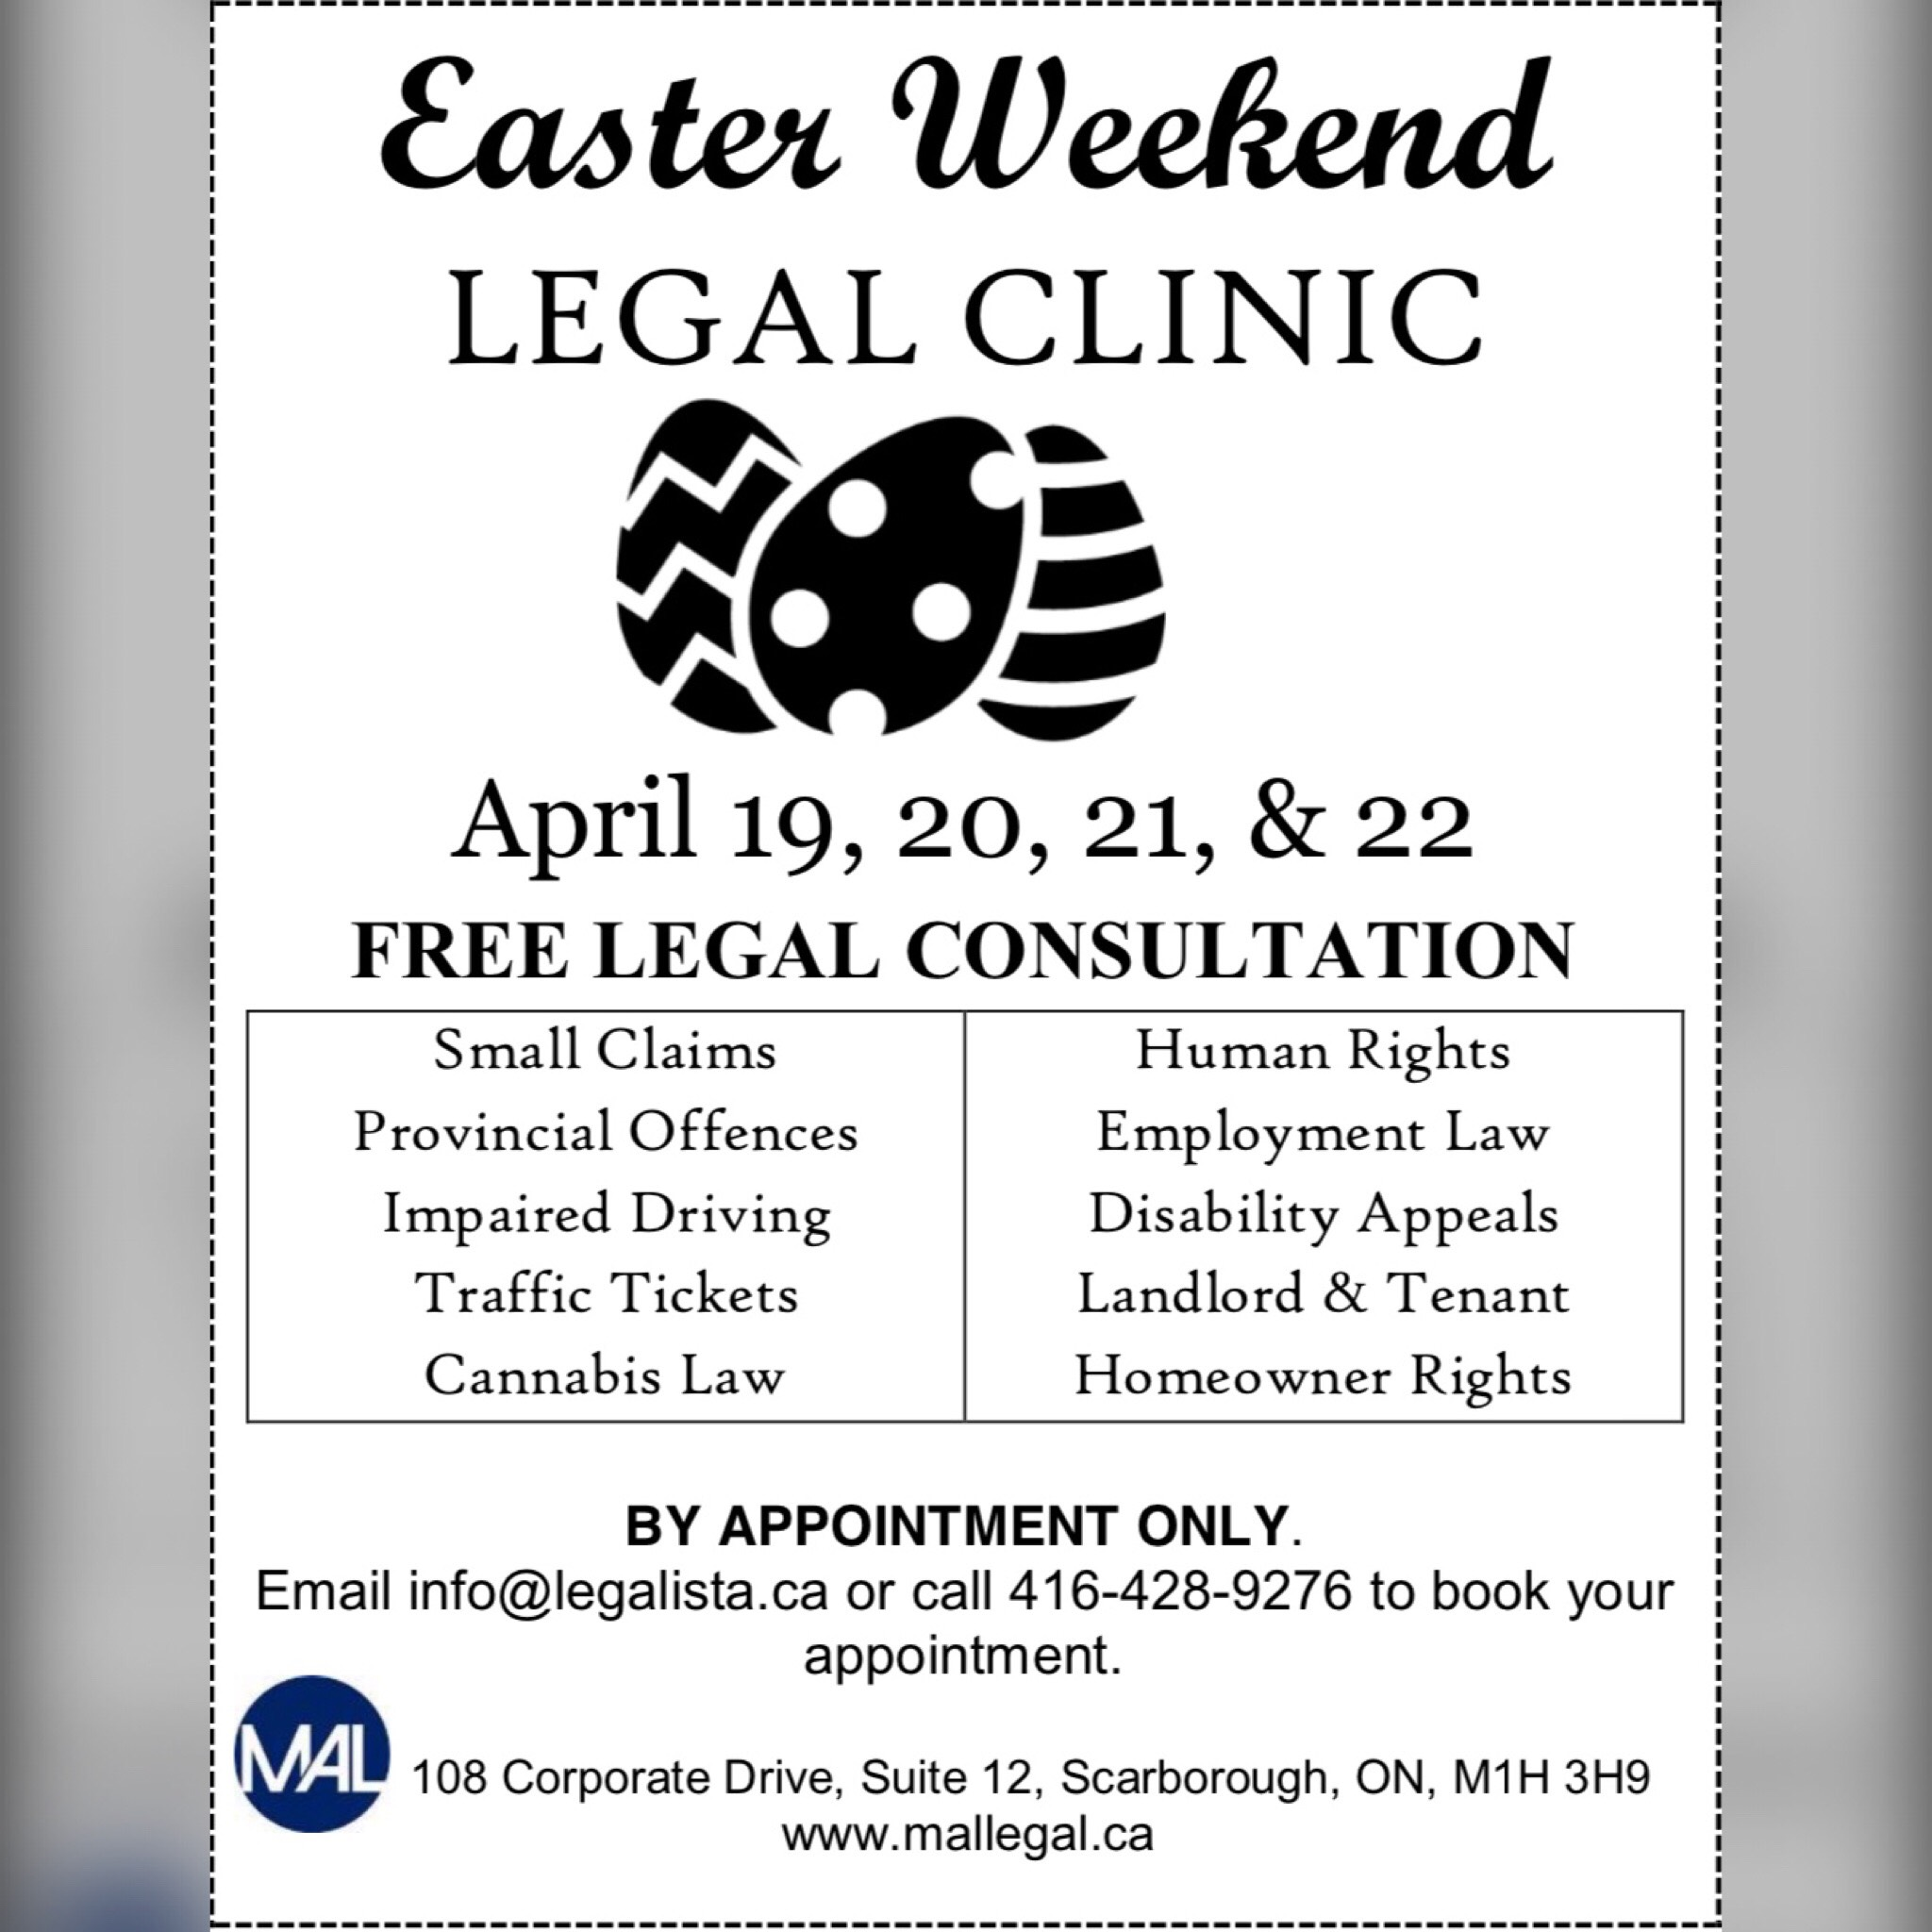 Easter Weekend Legal Clinic